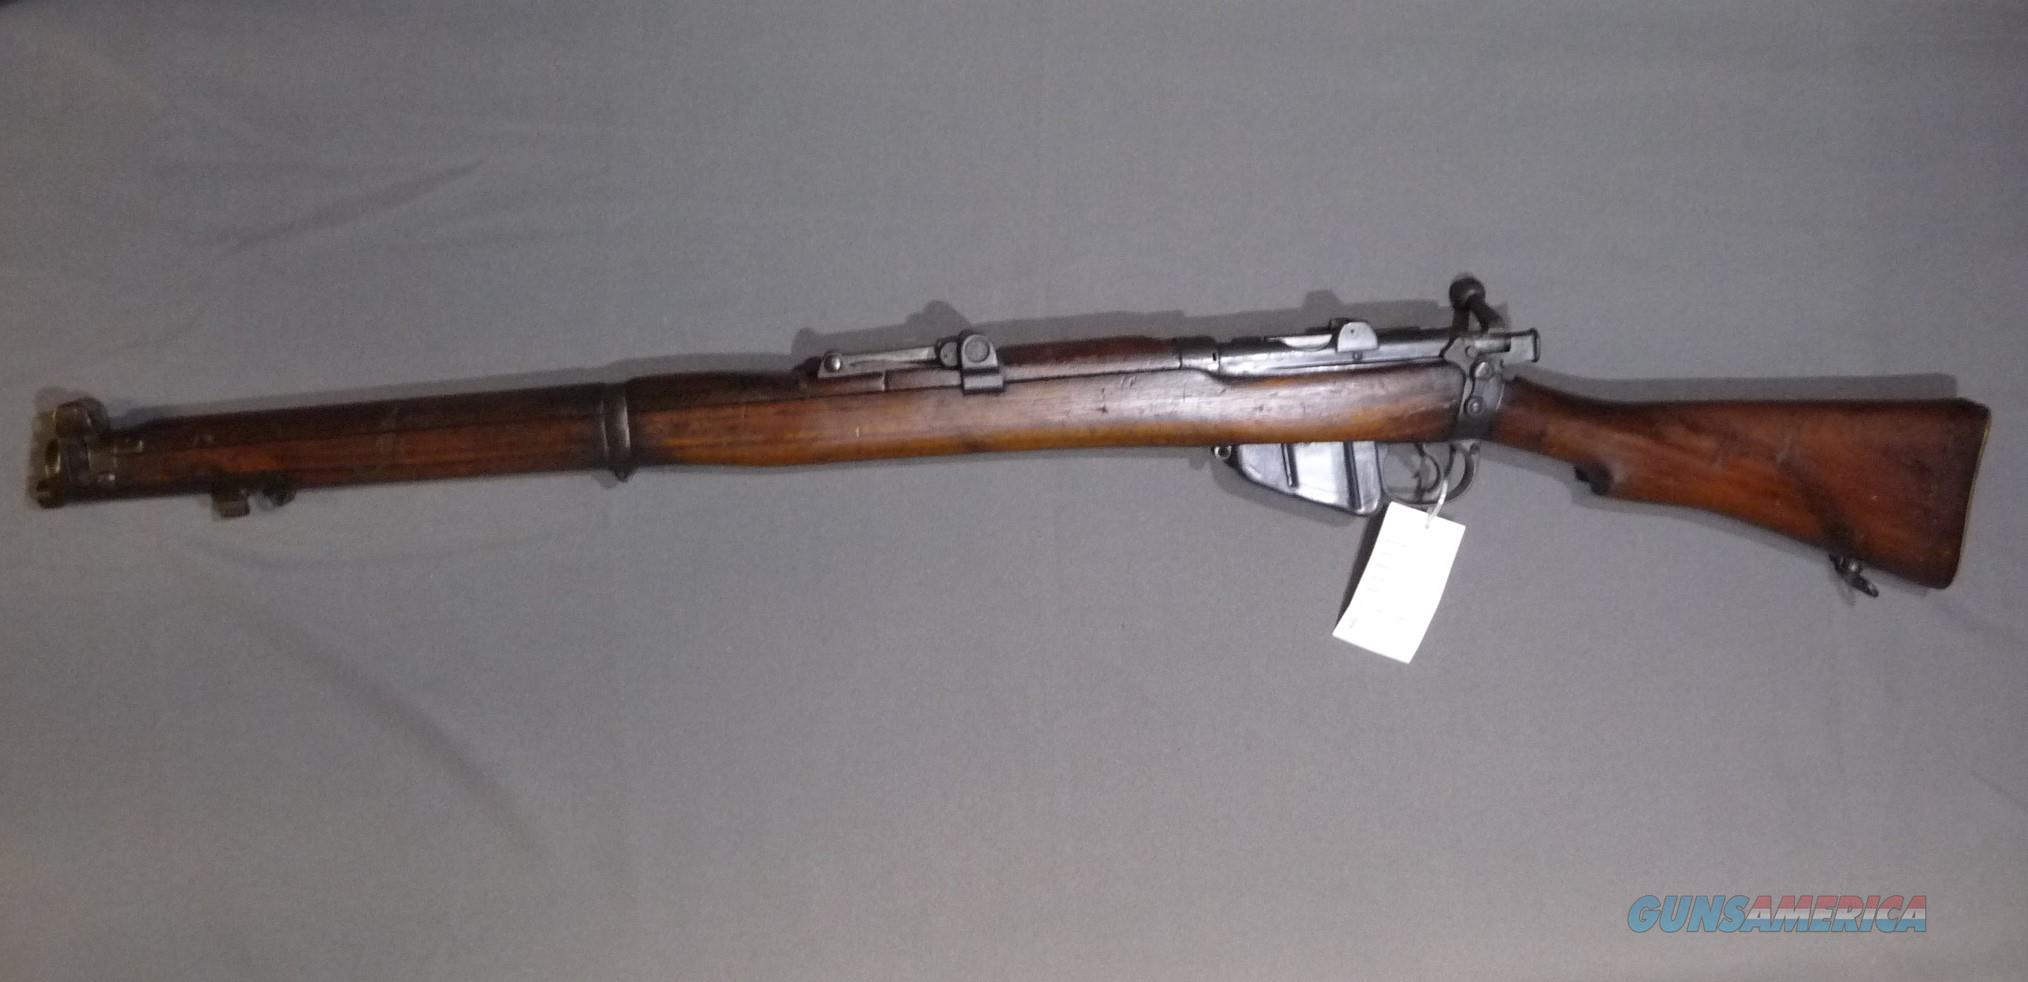 BSA 1917 7.62x39 Rifle  Guns > Rifles > BSA Rifles